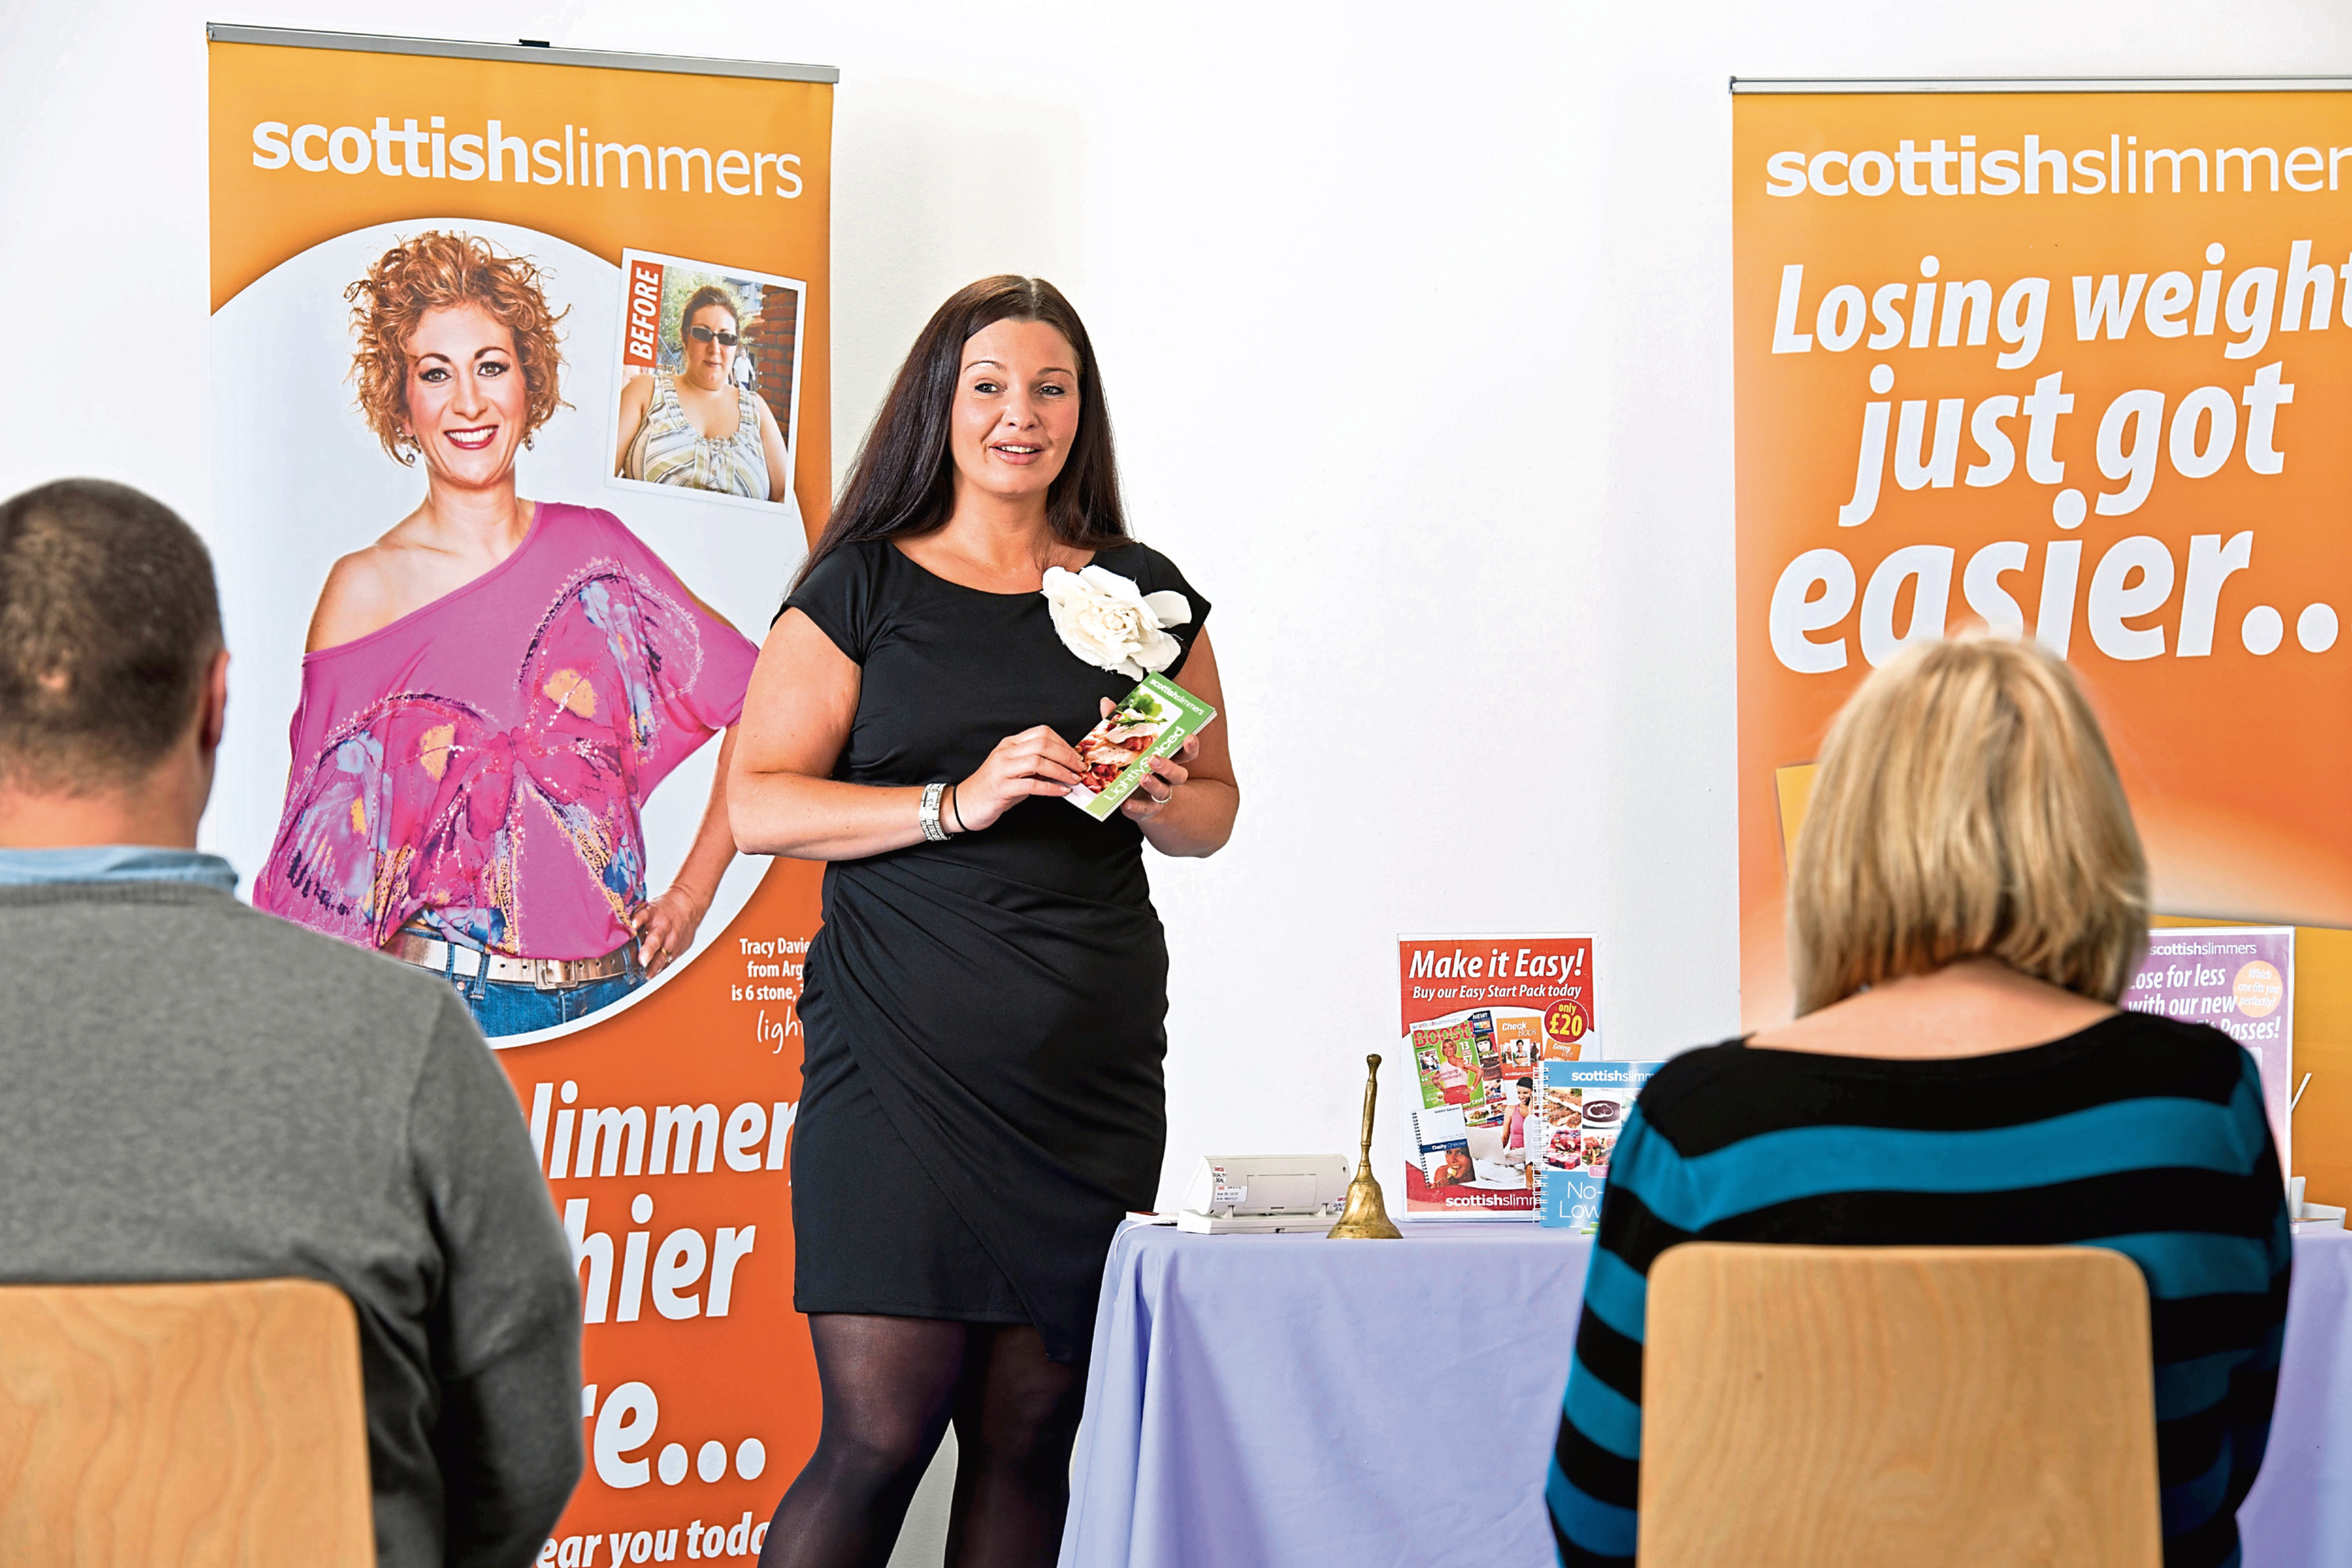 All Scottish Slimmers classes have been cancelled